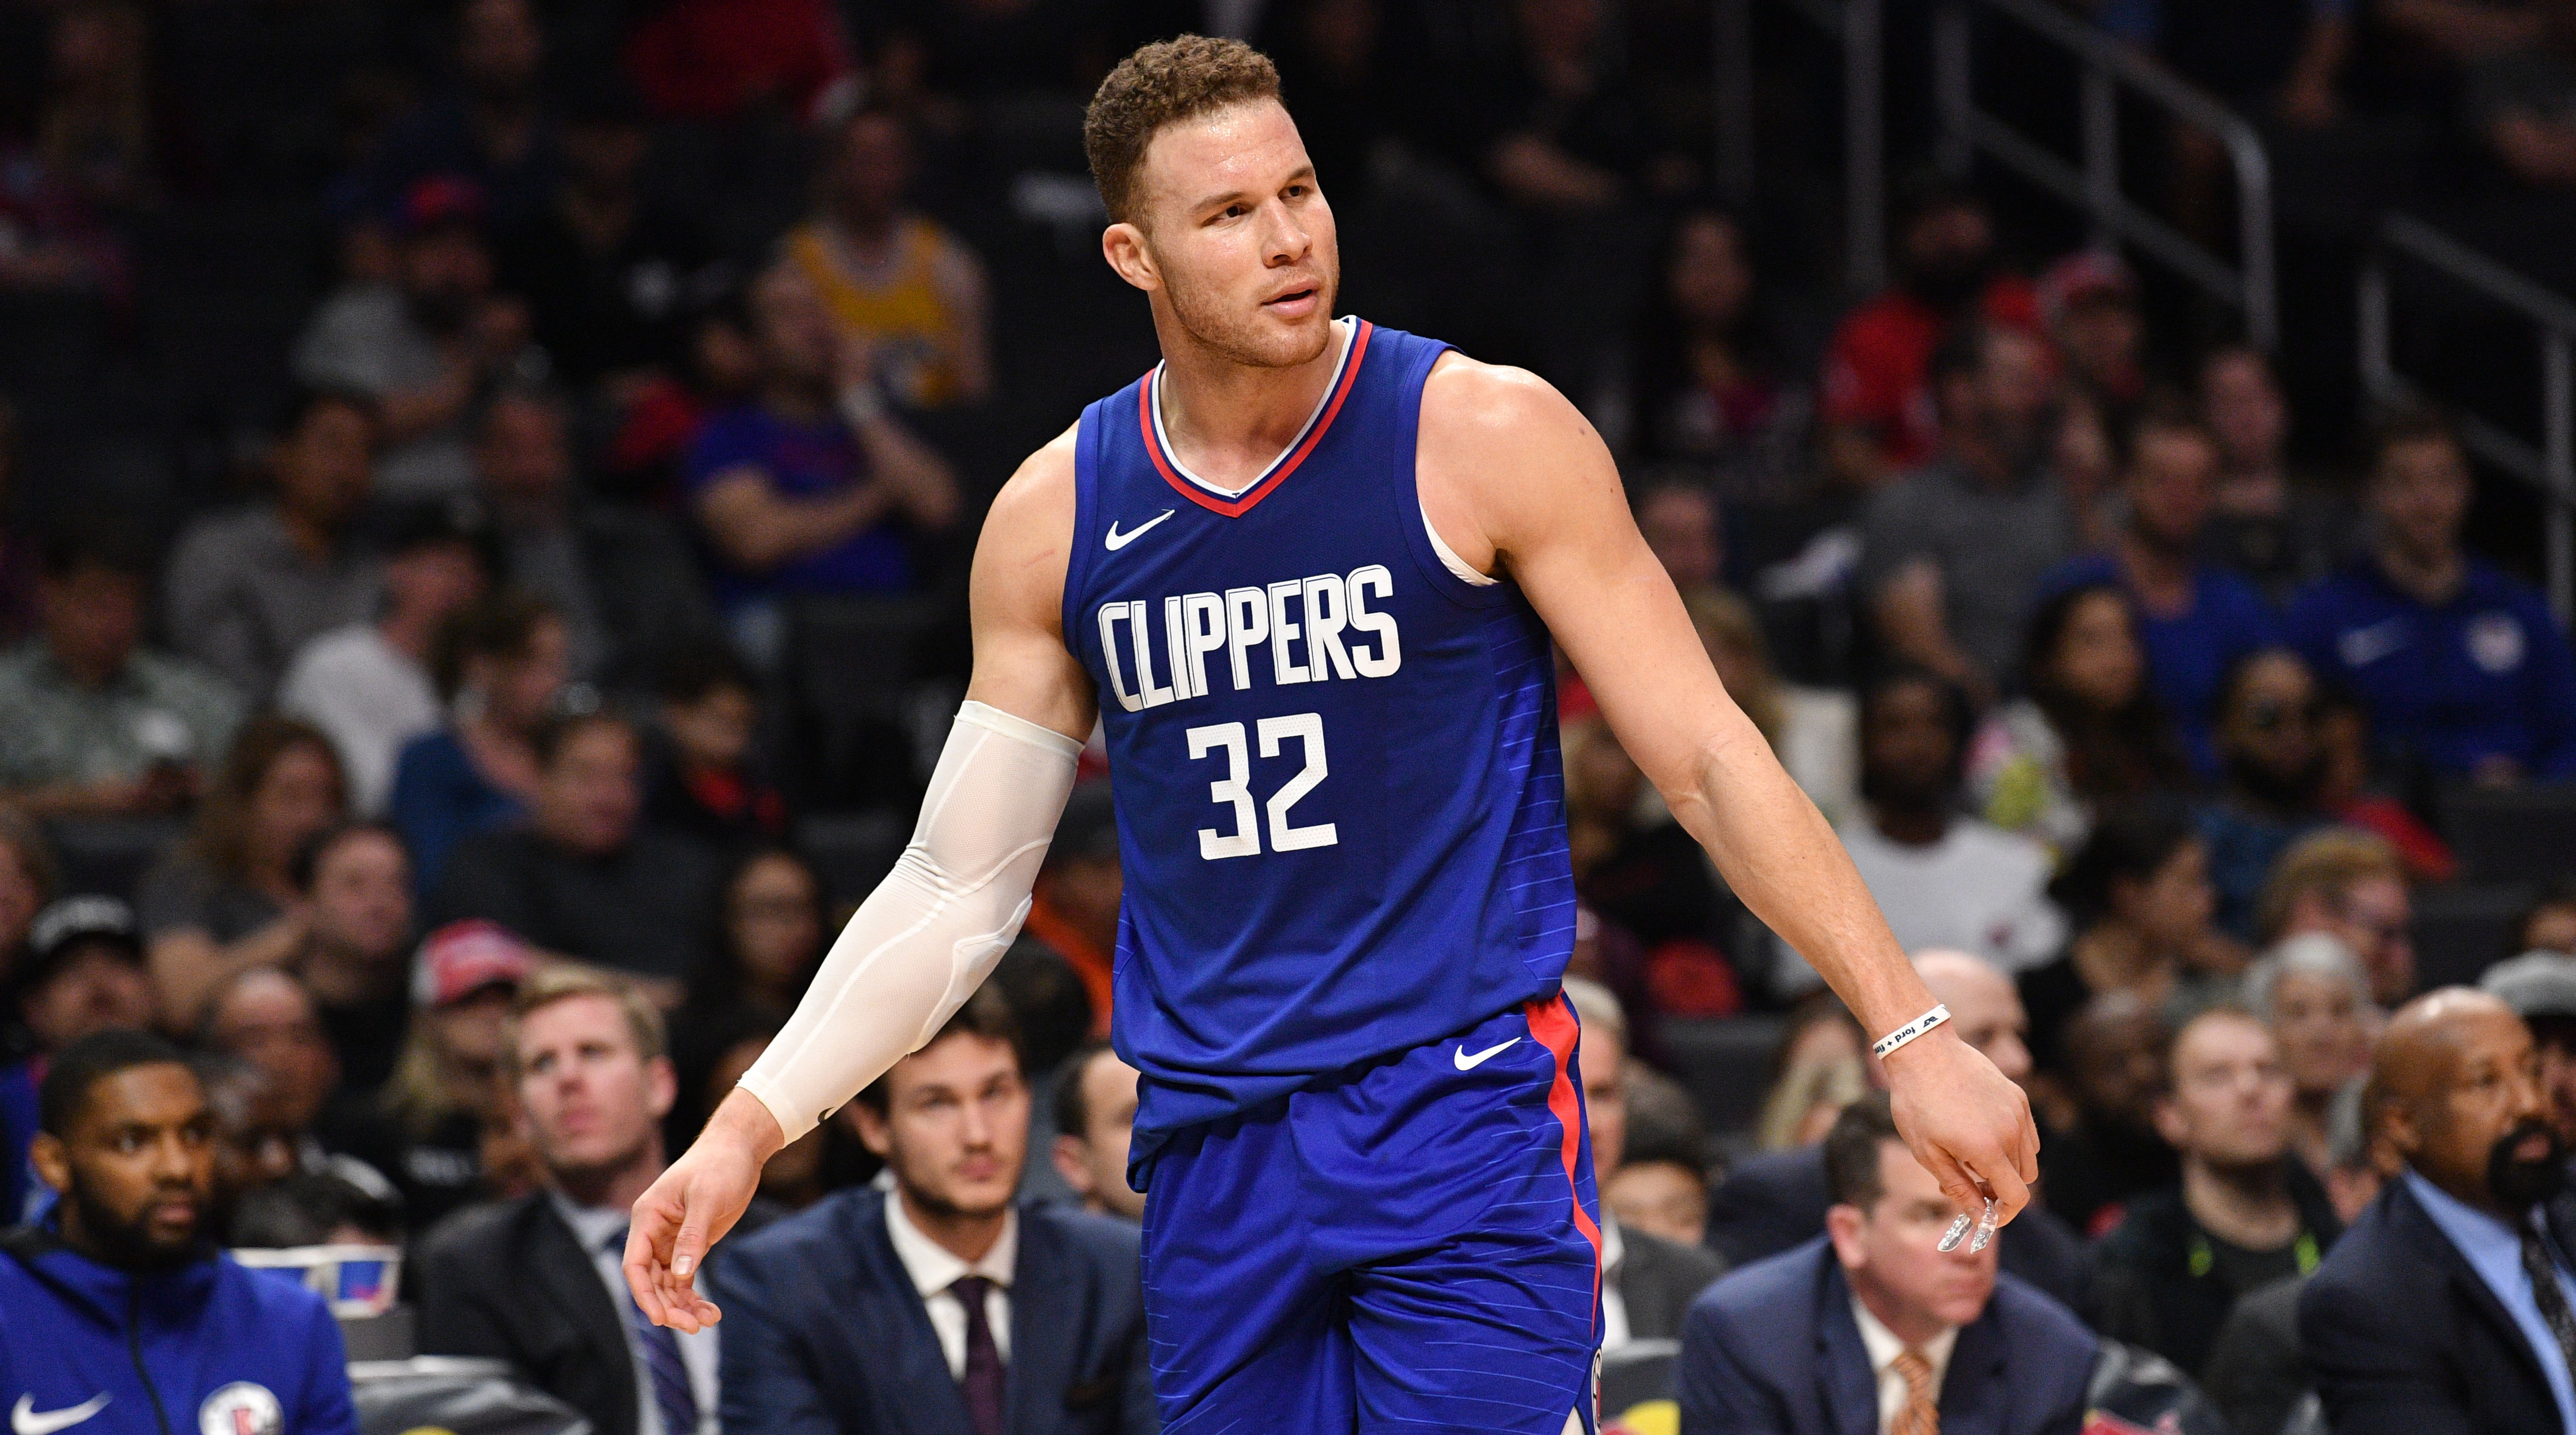 Blake griffin trade clippers acknowledge reality with pistons deal blake griffin trade clippers acknowledge reality with pistons deal si m4hsunfo Gallery